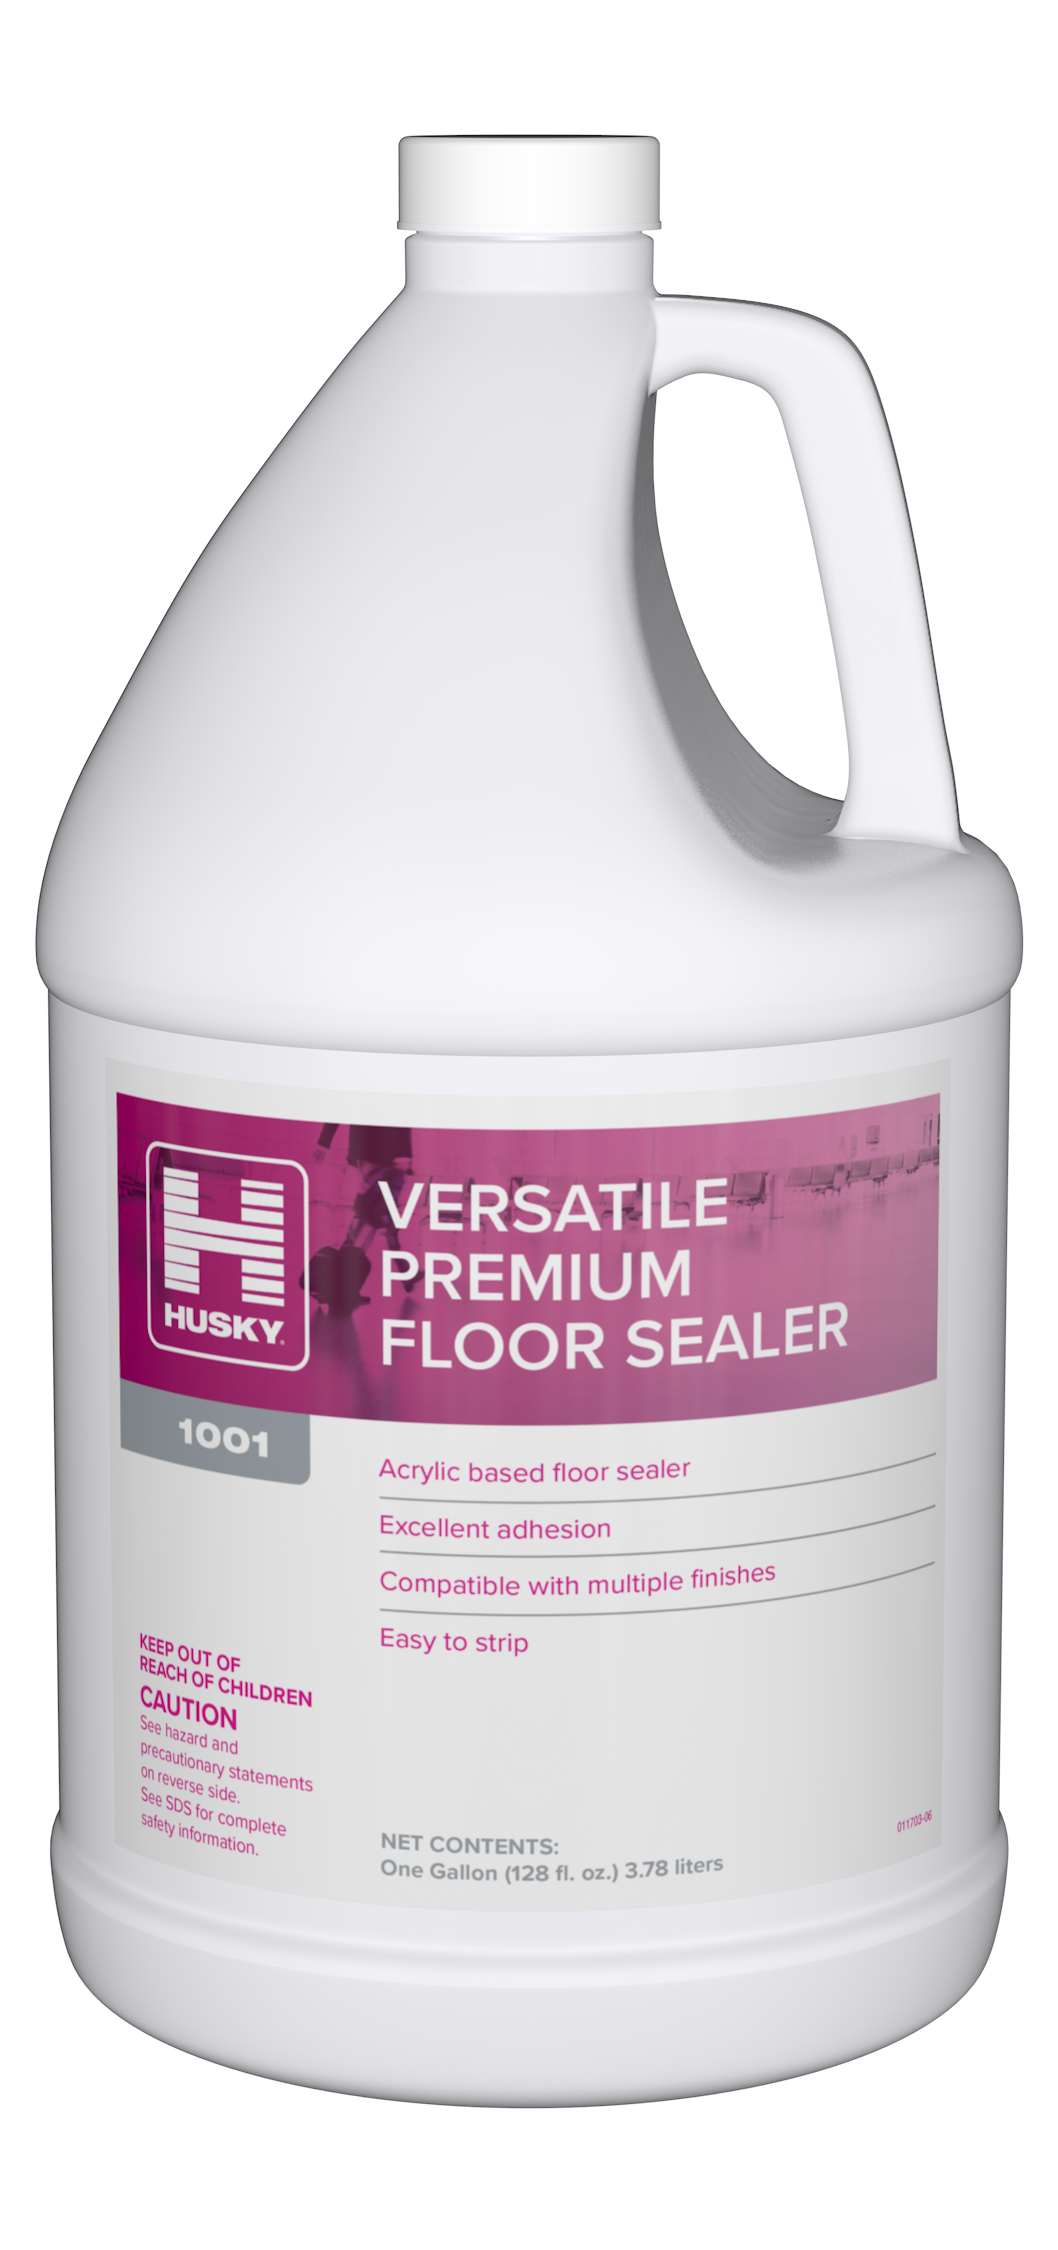 Durable Acrylic Floor Sealer Quickly And Easily Fills Concrete Terrazzo Vinyl Composition Other Resilient Tile Flooring Pores